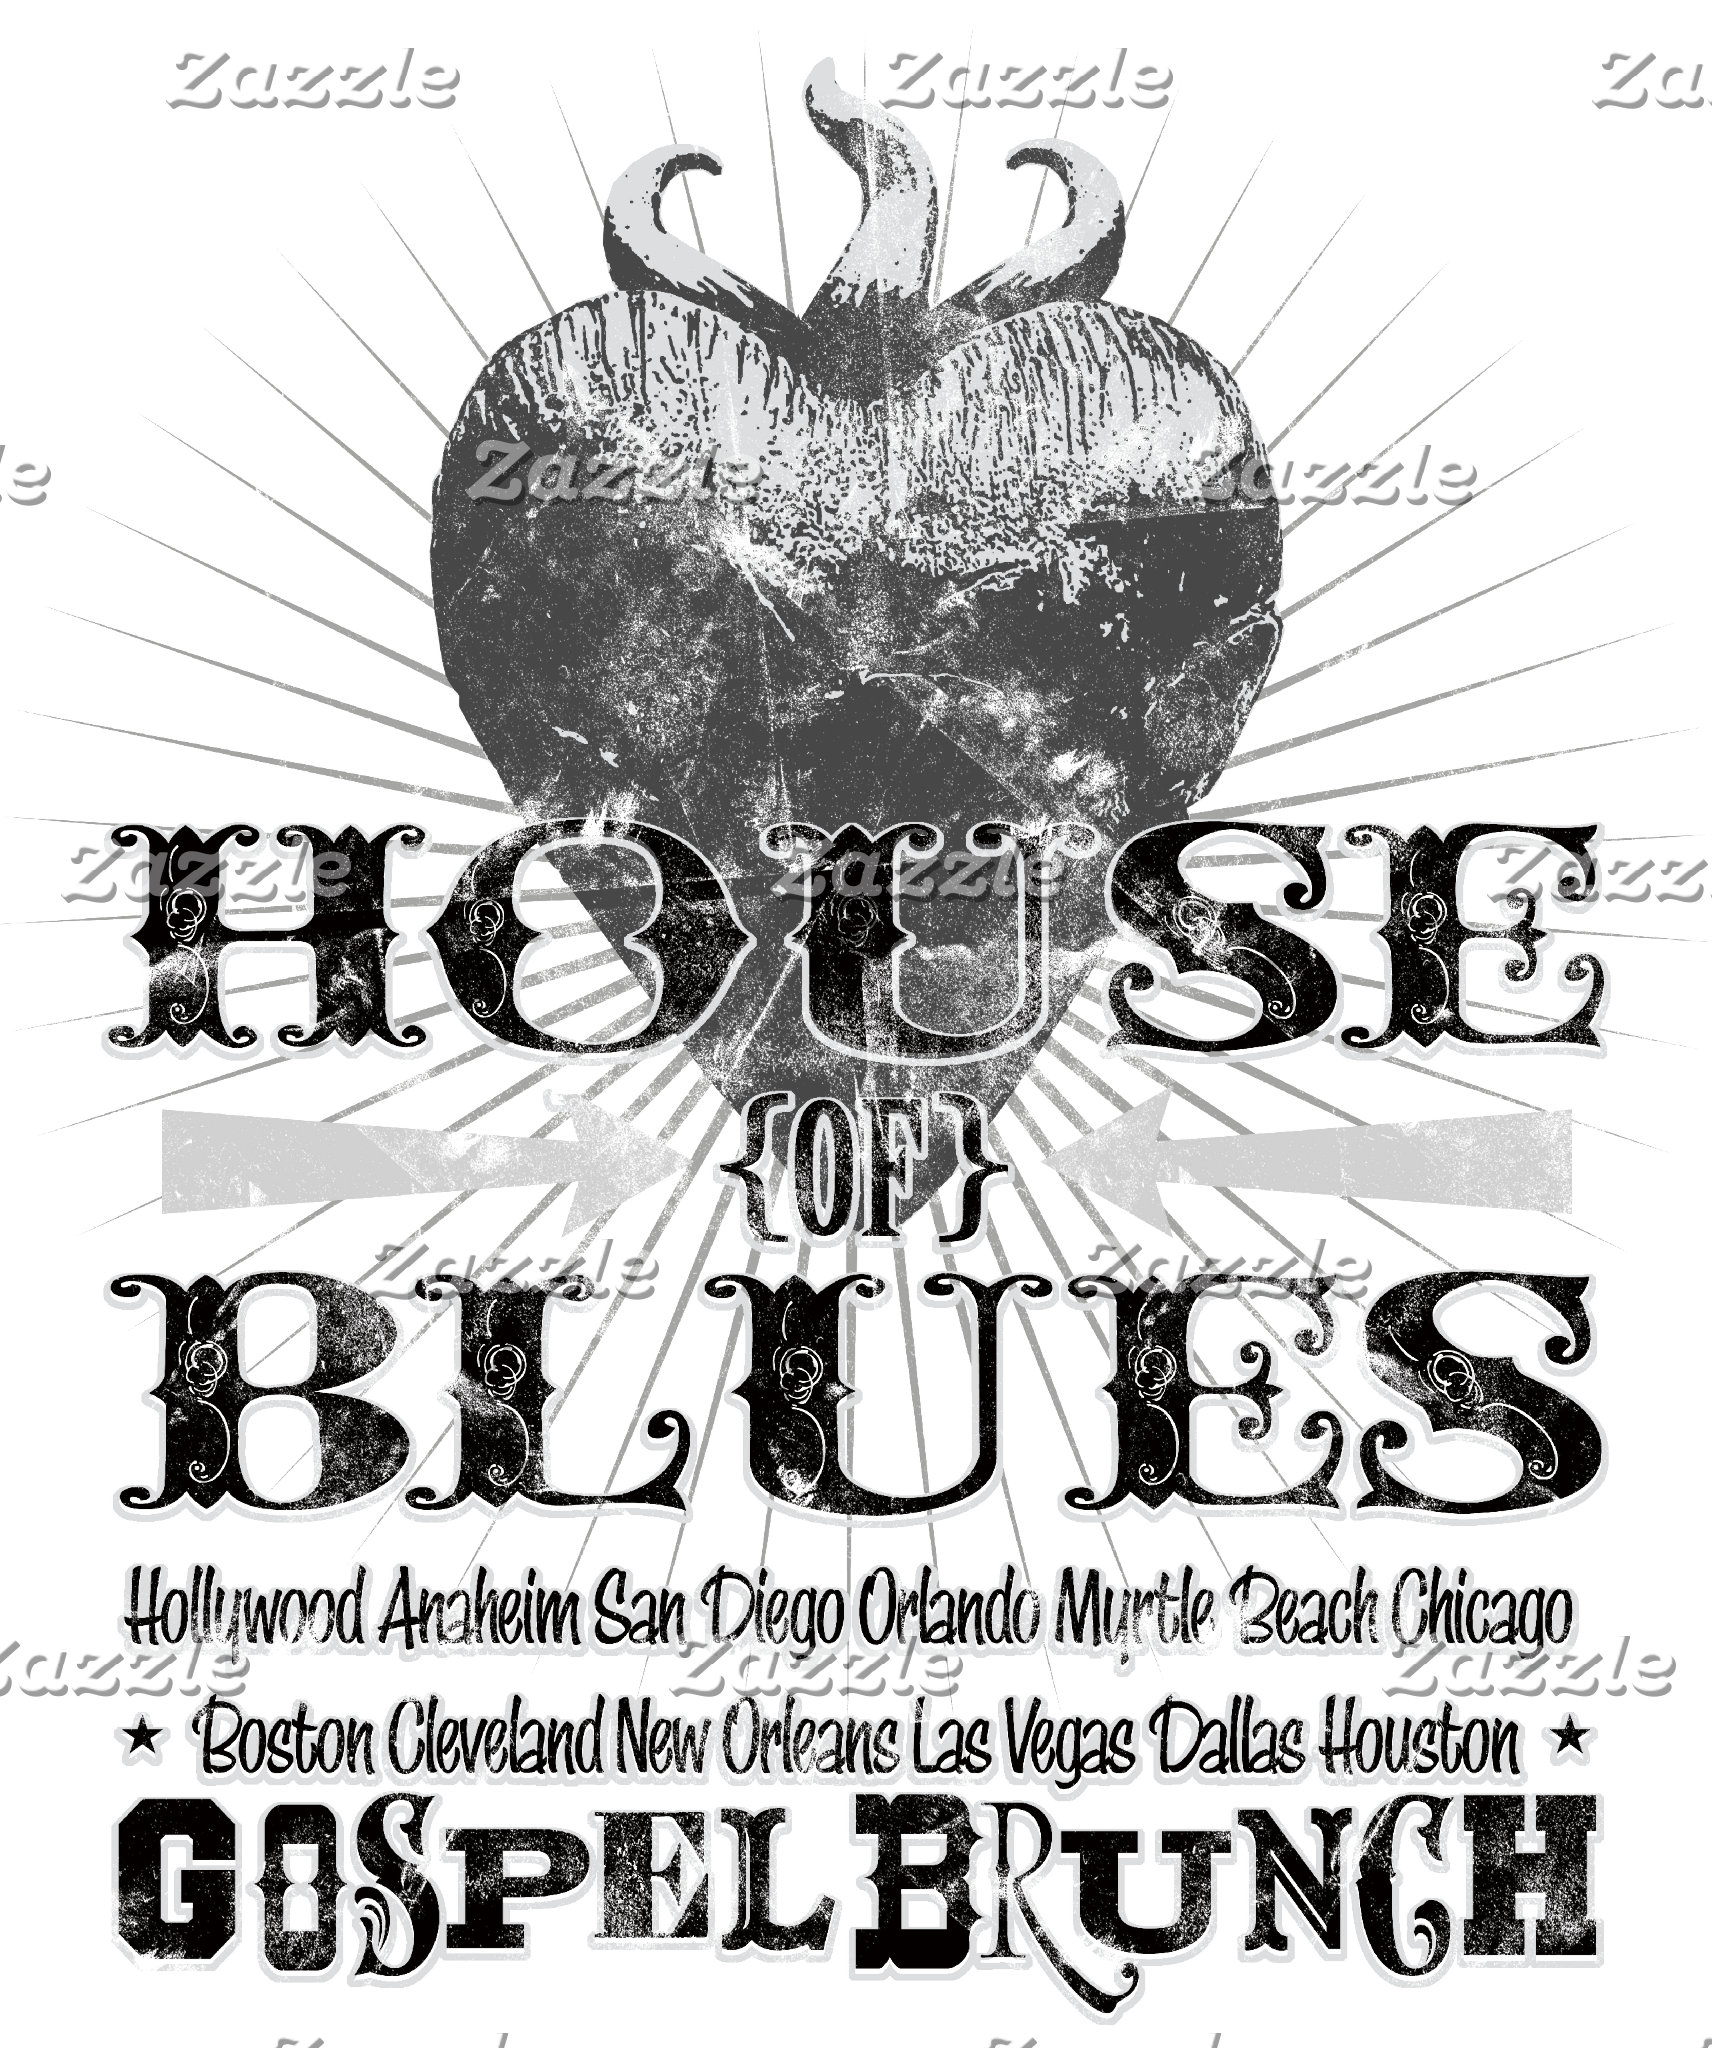 House of Blues - Gospel Brunch